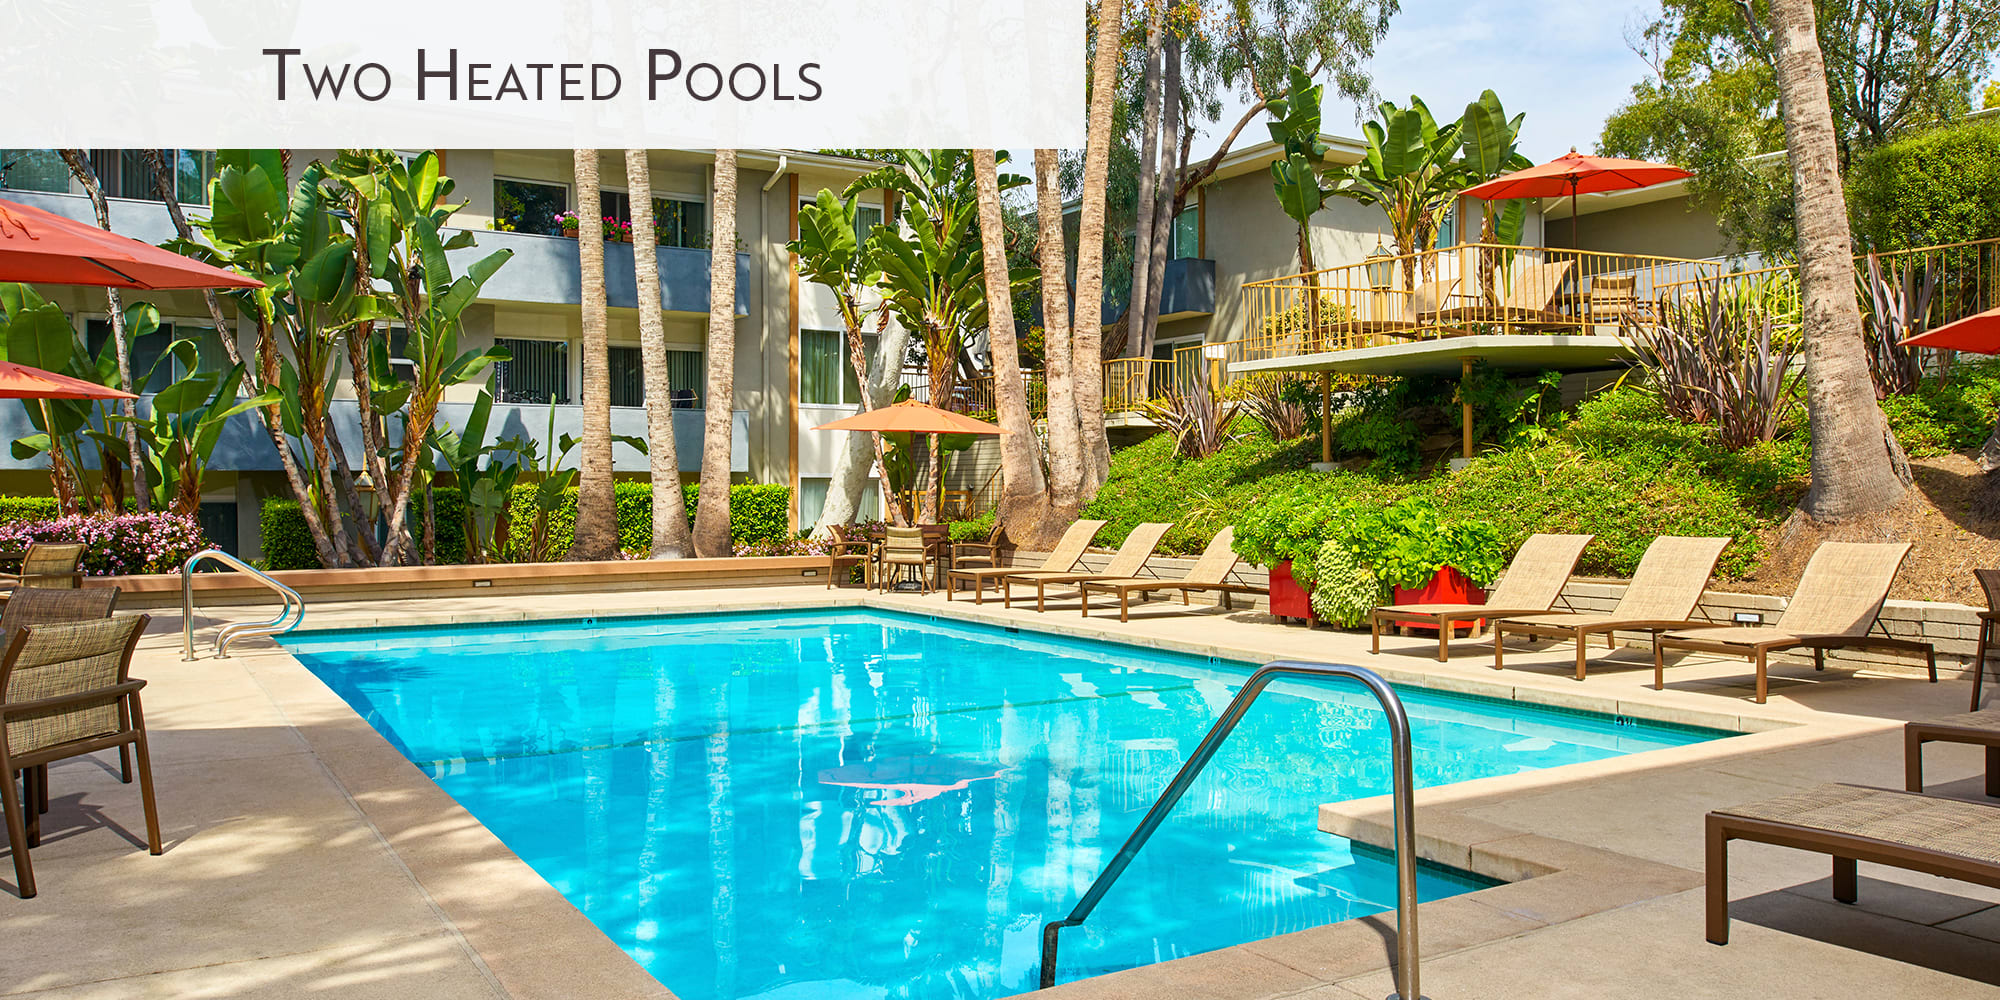 Heated outdoor swimming pool at West Park Village in Los Angeles, California